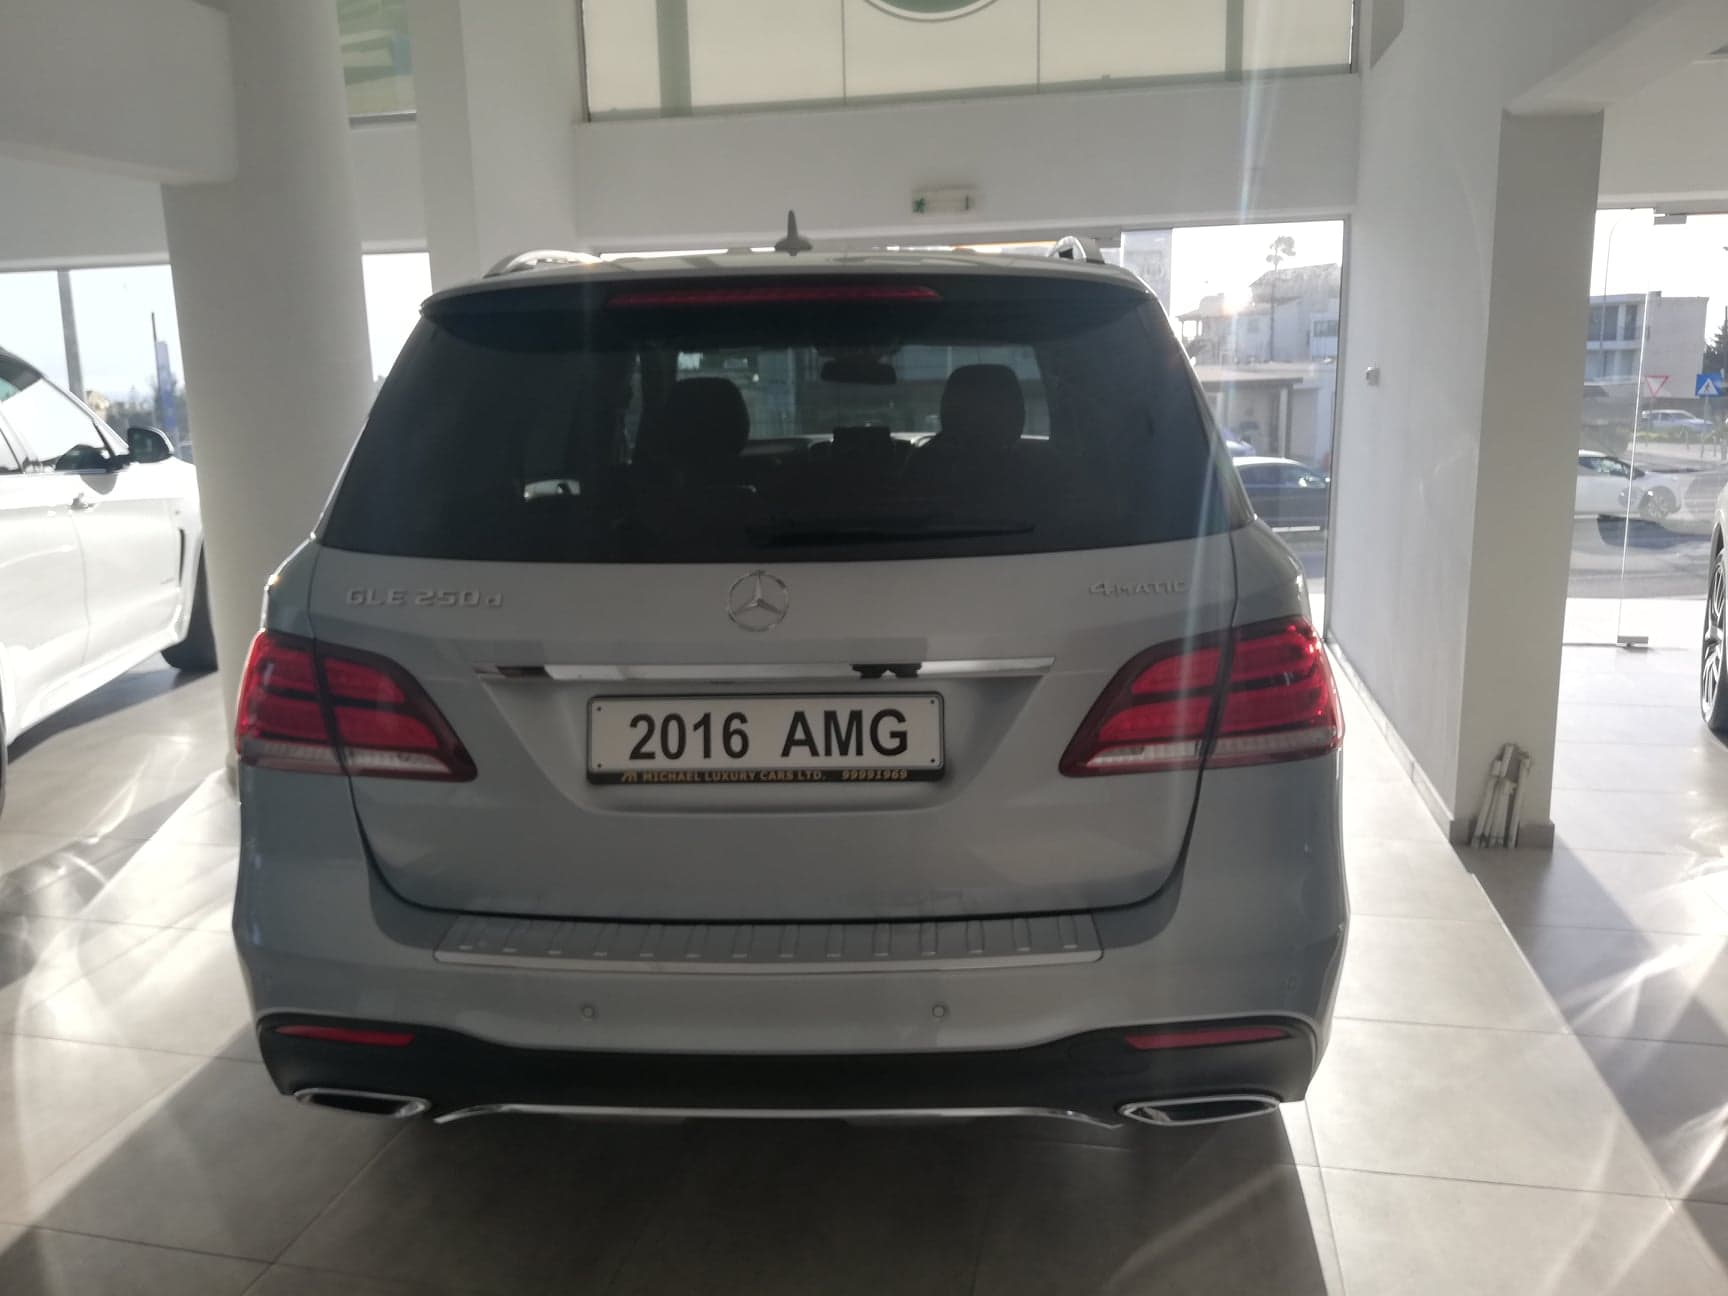 Mercedes Benz GLE 250D – 4Matic AMG Line